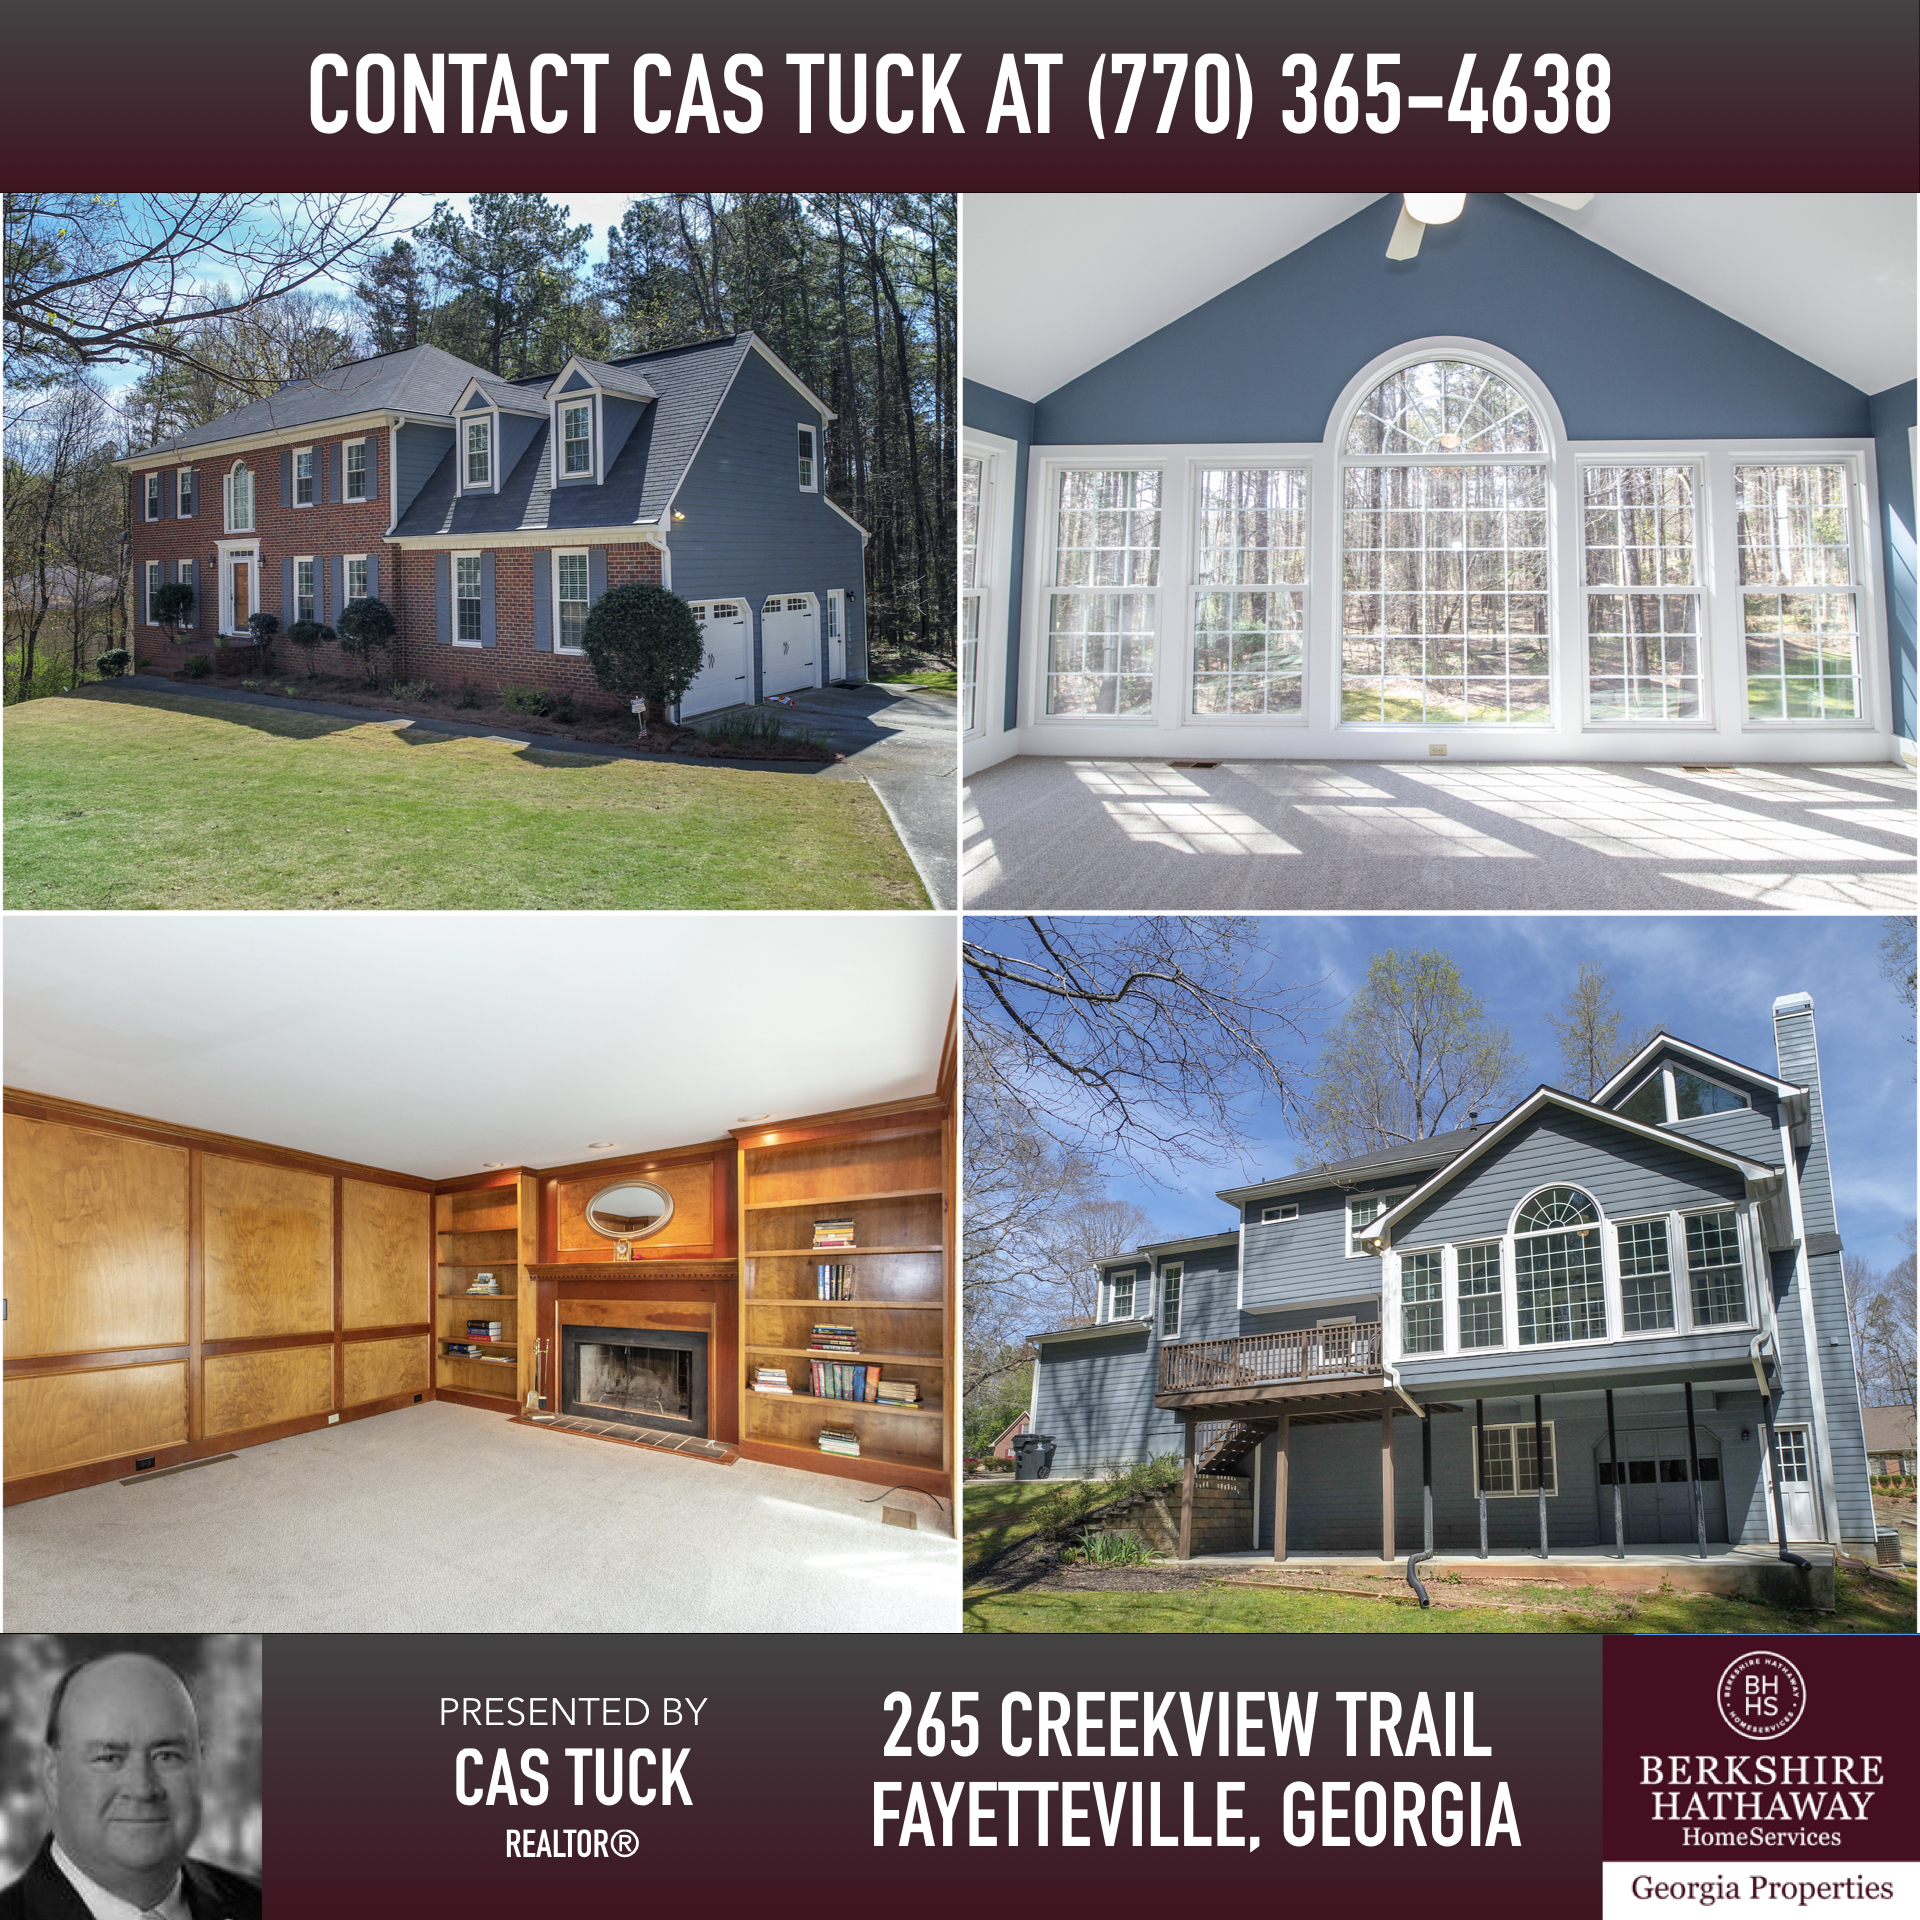 265 Creekview Trail - Branded Photos.jpg